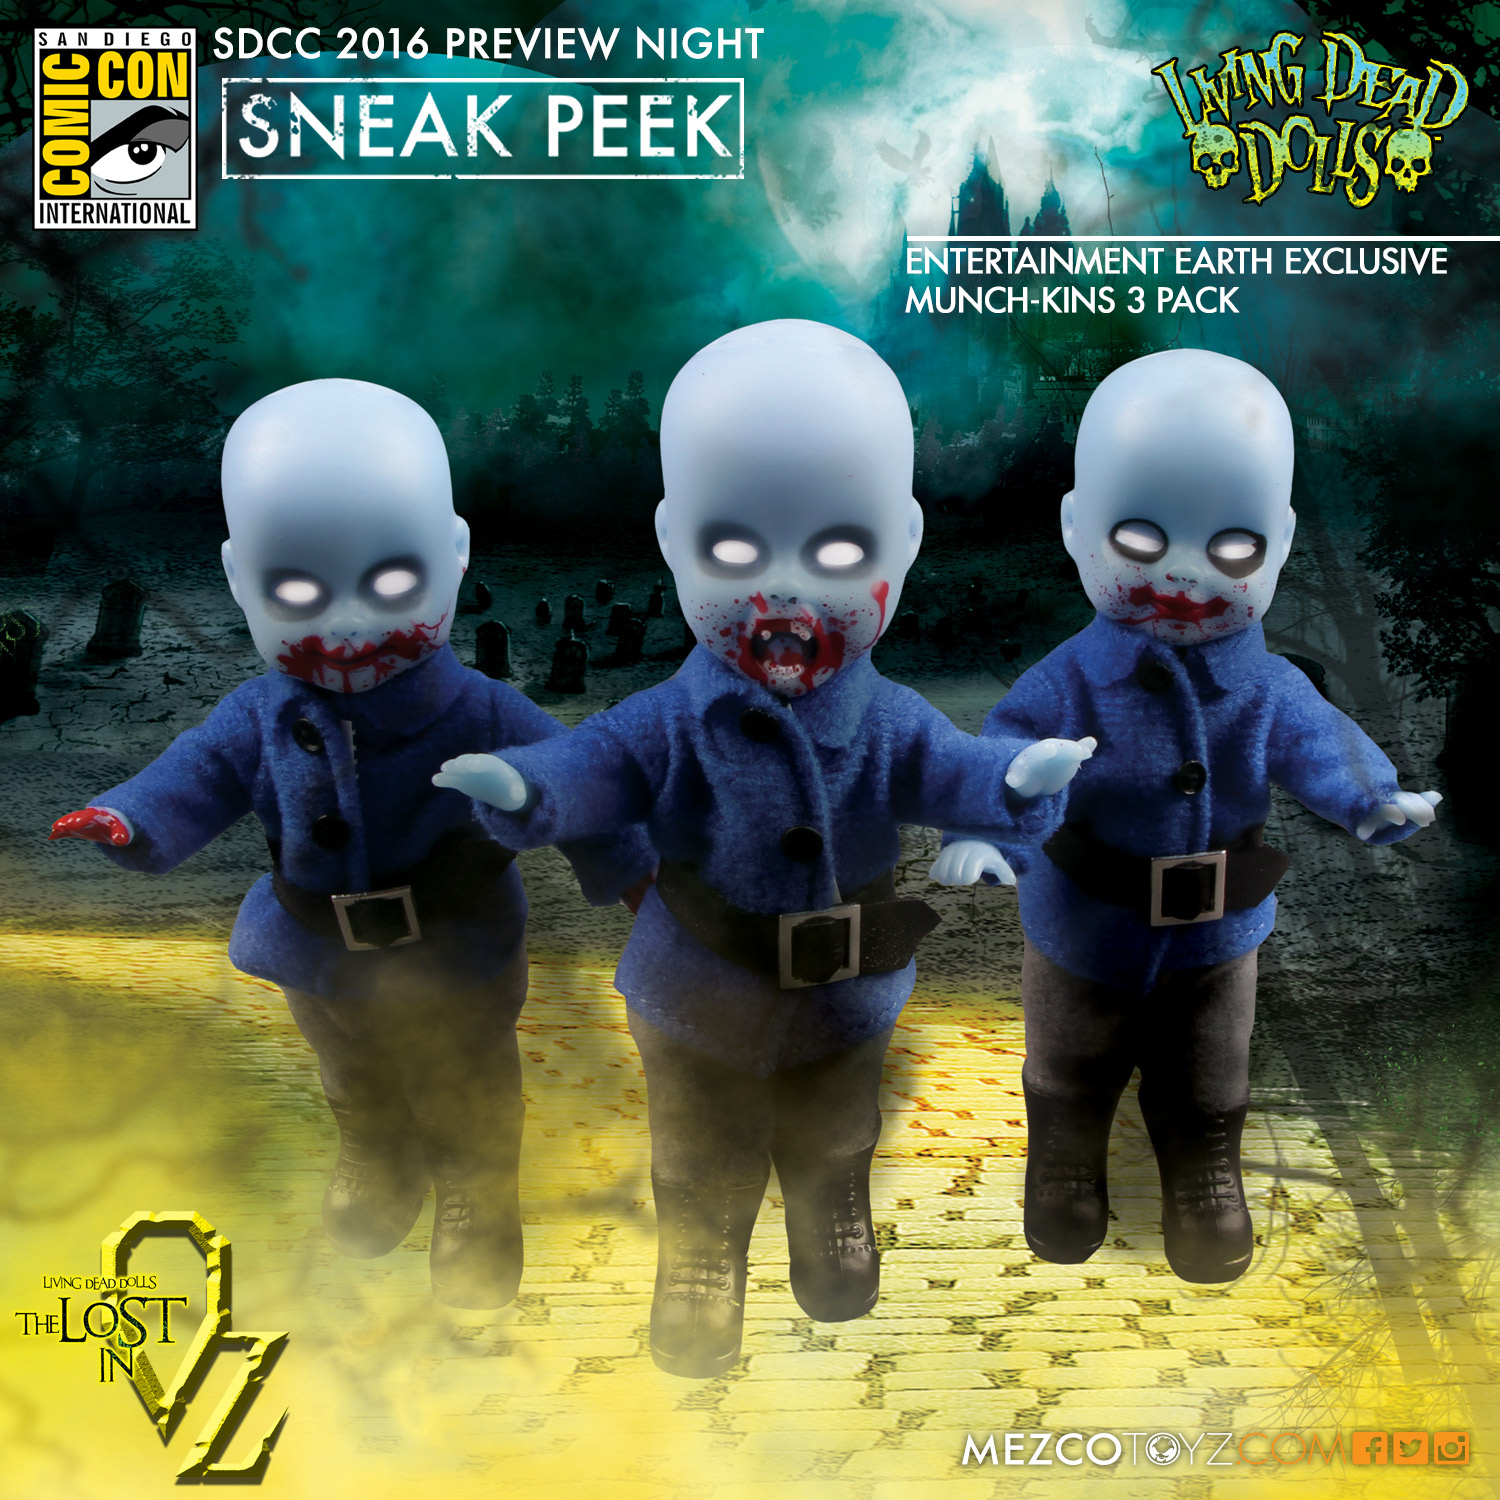 Living Dead Dolls Entertainment Earth Exclusive Munch-kins